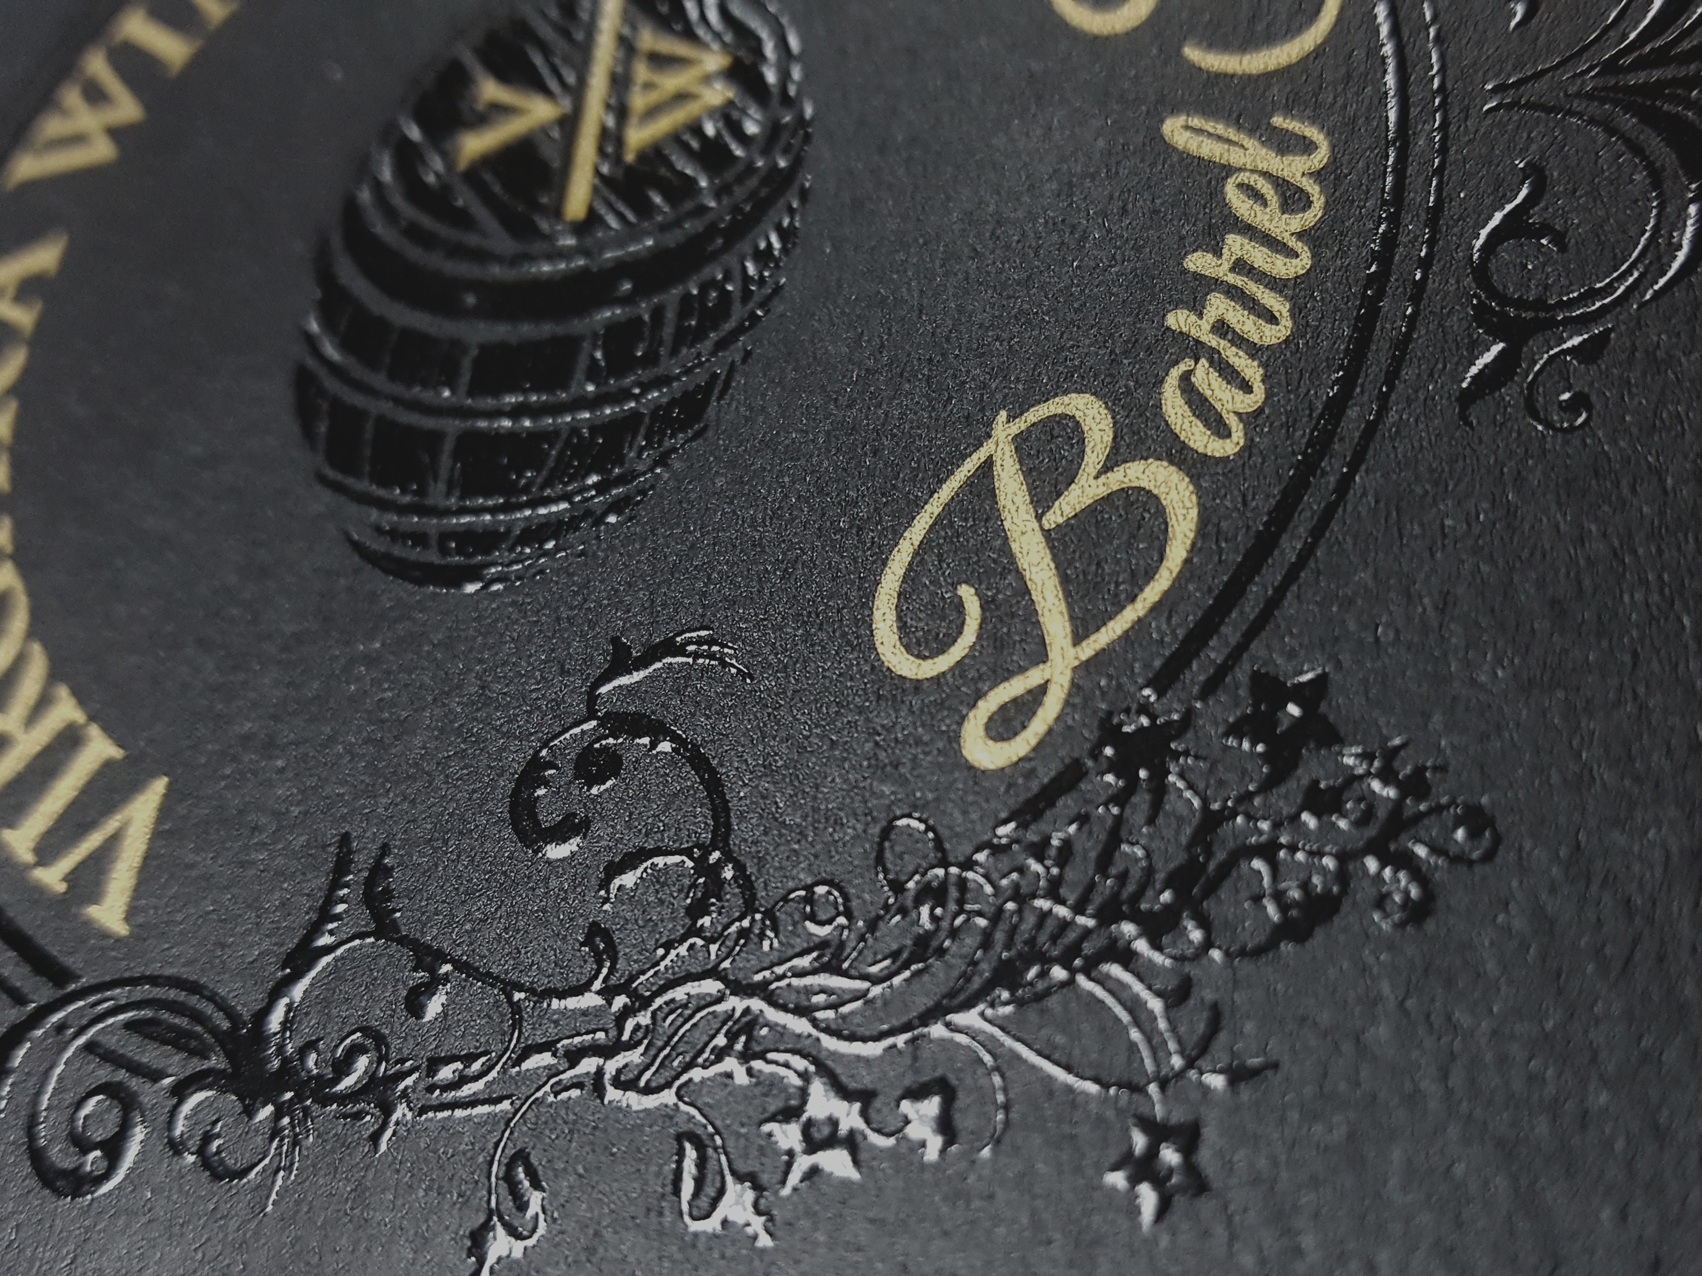 HIBUILD VARNISH - Hibuild varnish work to add a 3D textural effect to your label, without the limitations of an emboss. Perfect for finer details, or to add an extra pop to your branding or an image element.